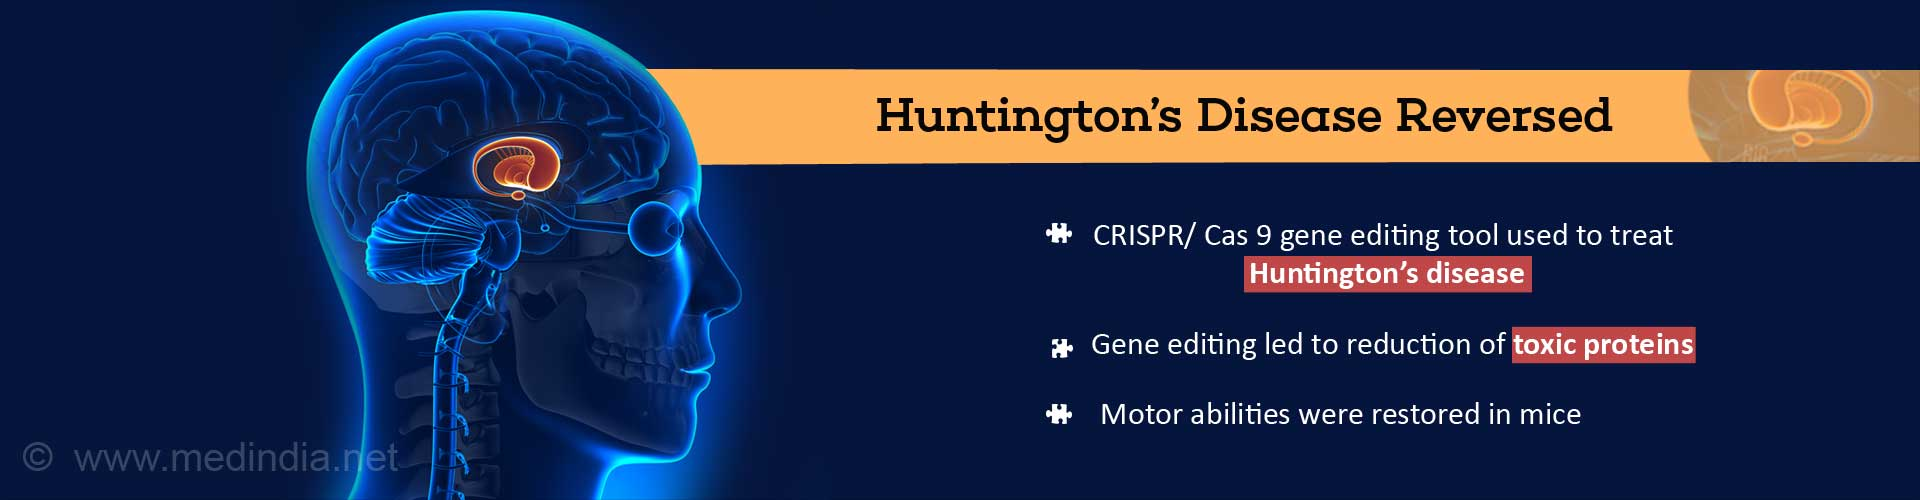 Huntington's Disease Reversed - CRISPR/Cas 9 gene editing tool used to treat Huntington's Disease - Gene editing led to reduction of toxic proteins - Motor abilities were restored in mice